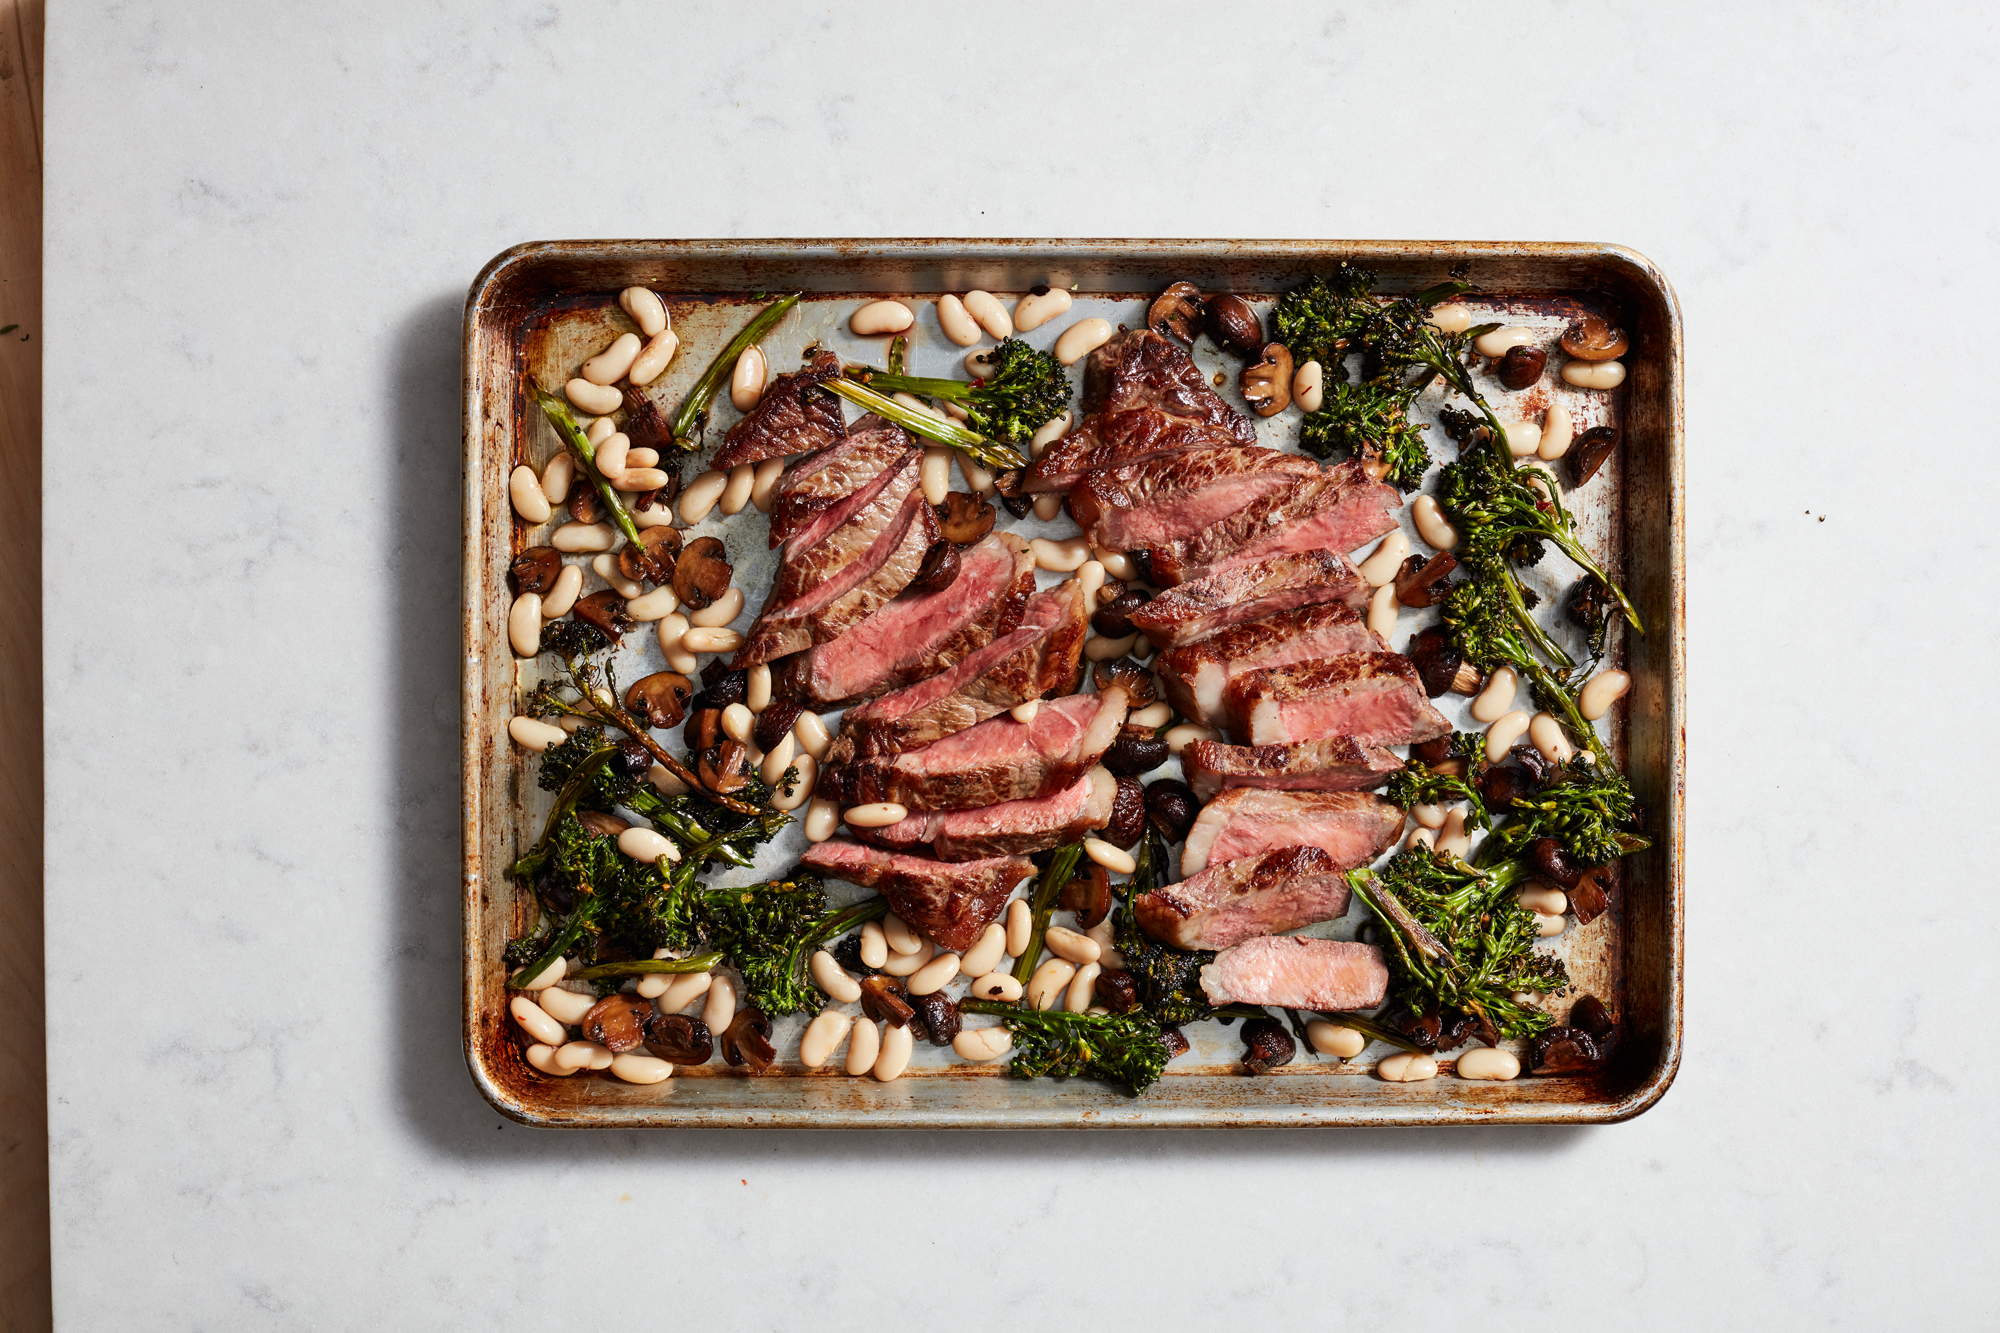 Sheet Pan Steak With Beans and Broccolini